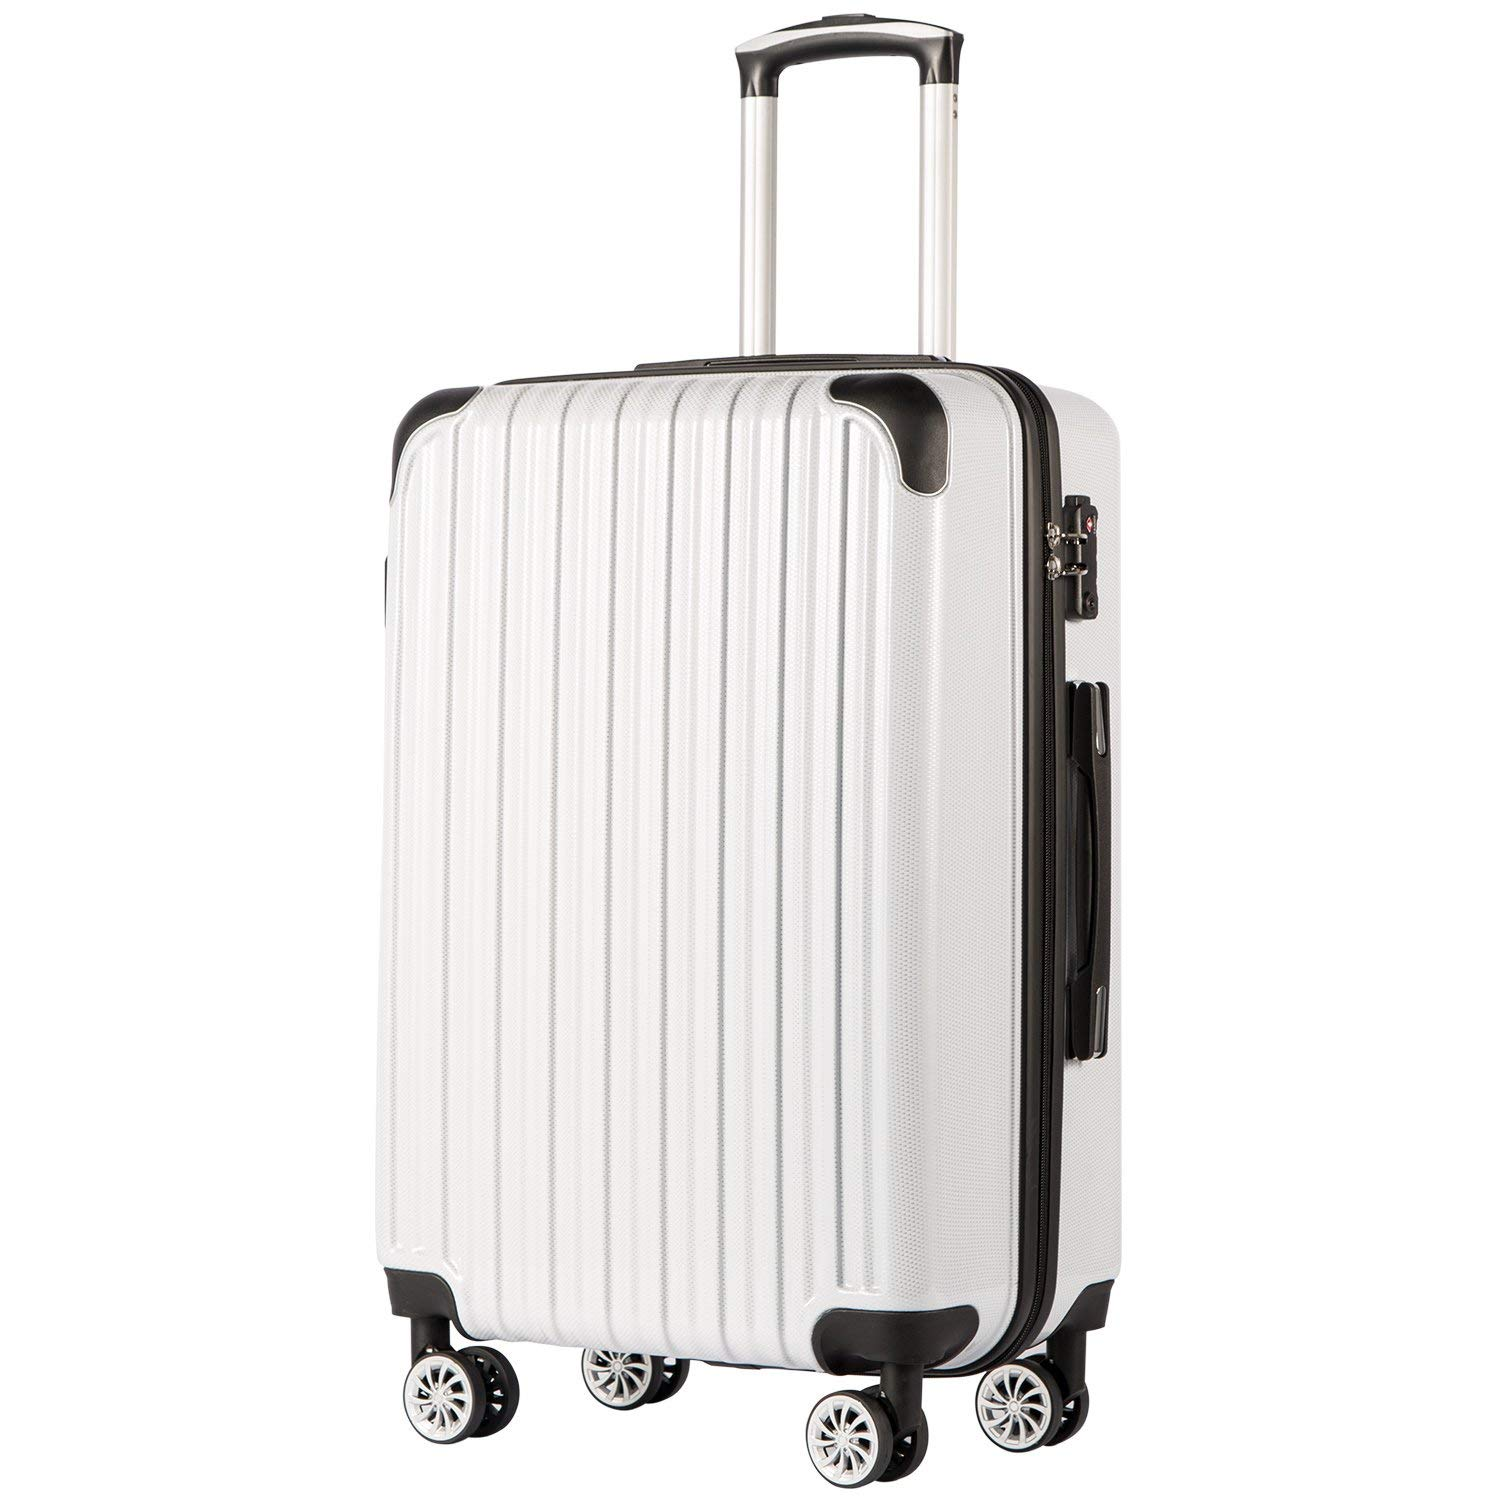 COOLIFE Luggage Expandable only 28 Suitcase PC ABS Spinner 20in 24in 28in Carry on White Grid New, S 20in _Carry on